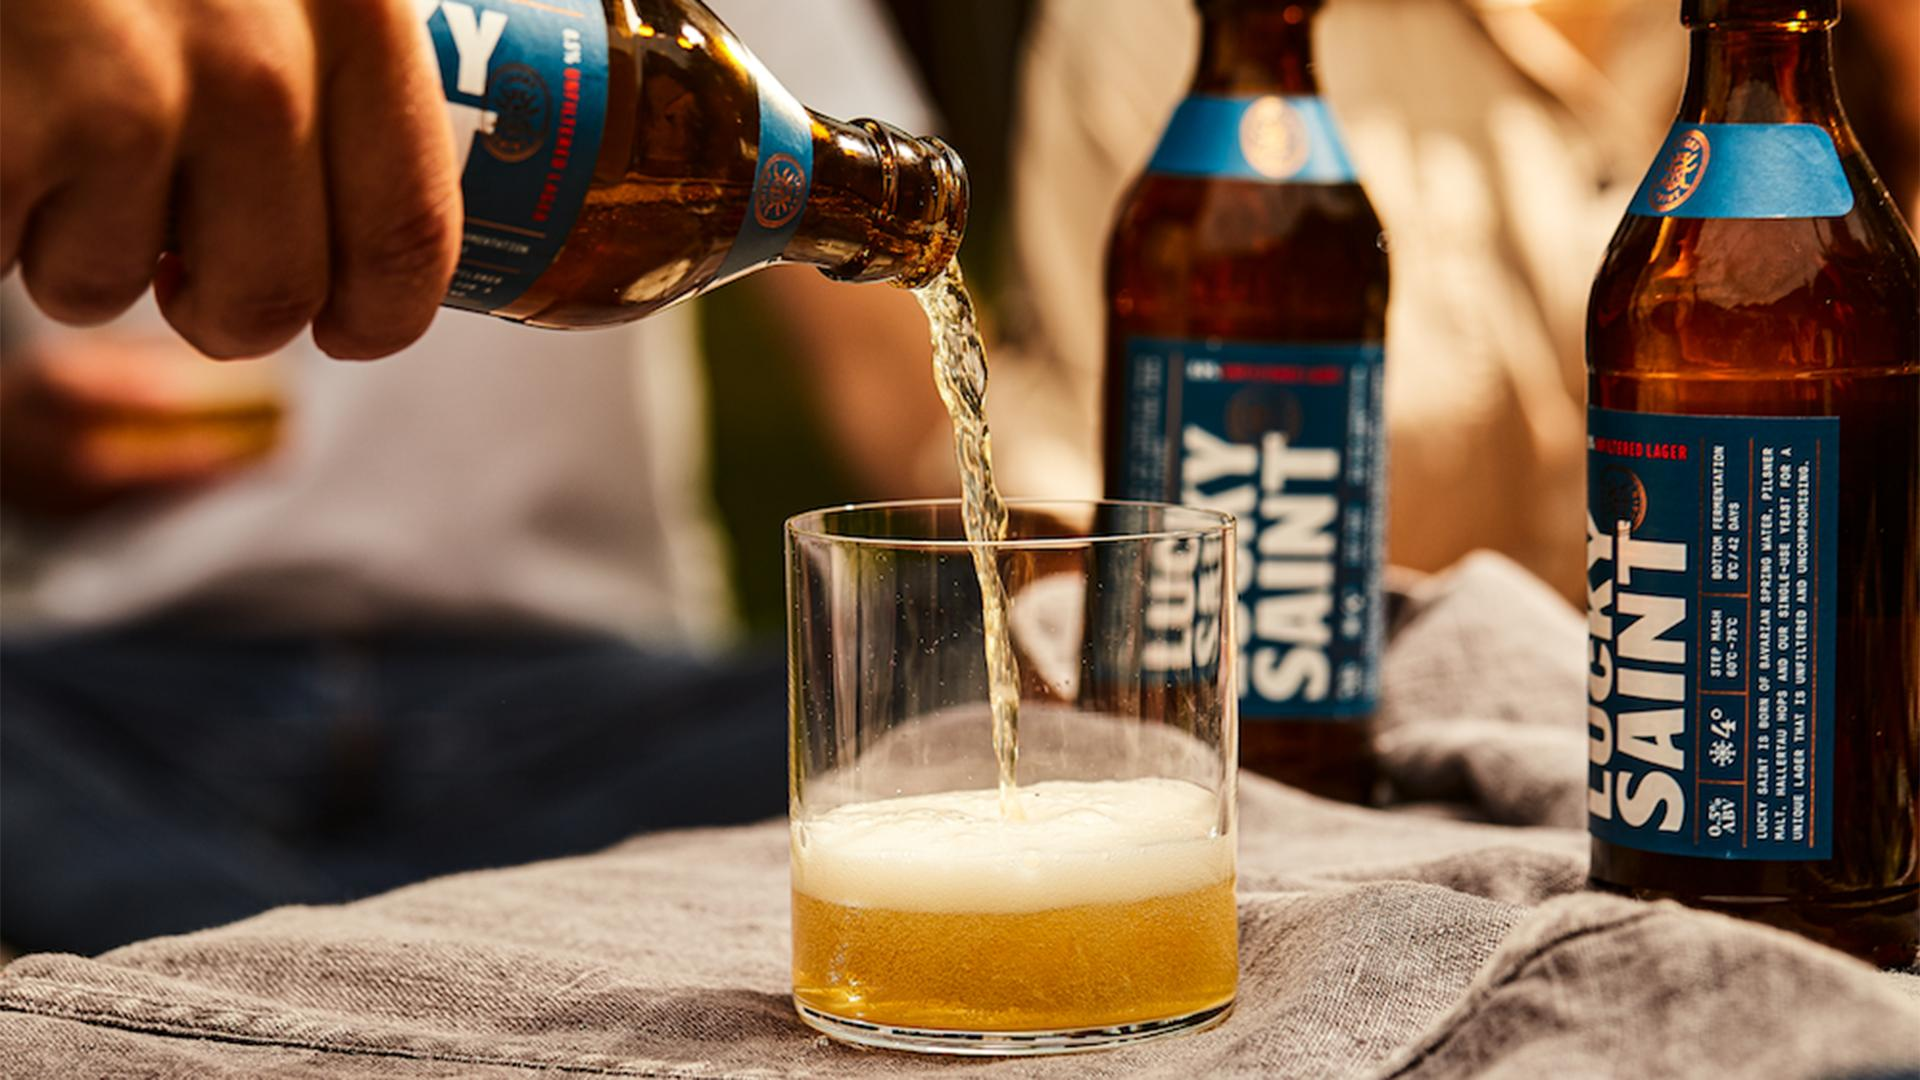 Best Non Alcoholic Beers London – Lucky Saint's Unfiltered Lager – 0.5% ABV